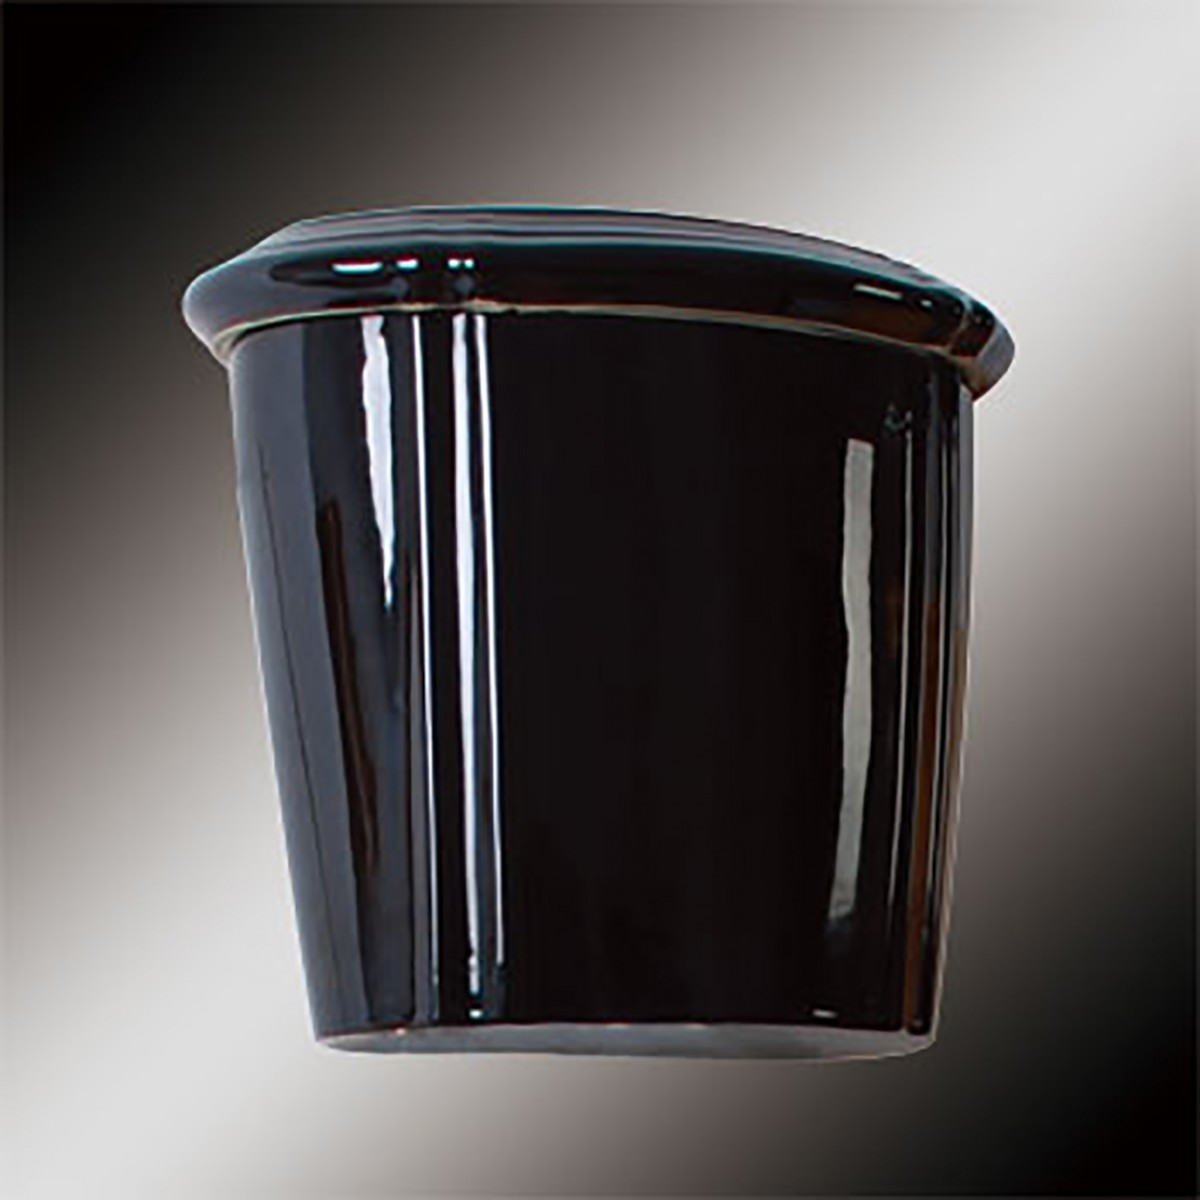 Toilet Part Black Vitreous Sheffield Tank Only | Renovator's Supply